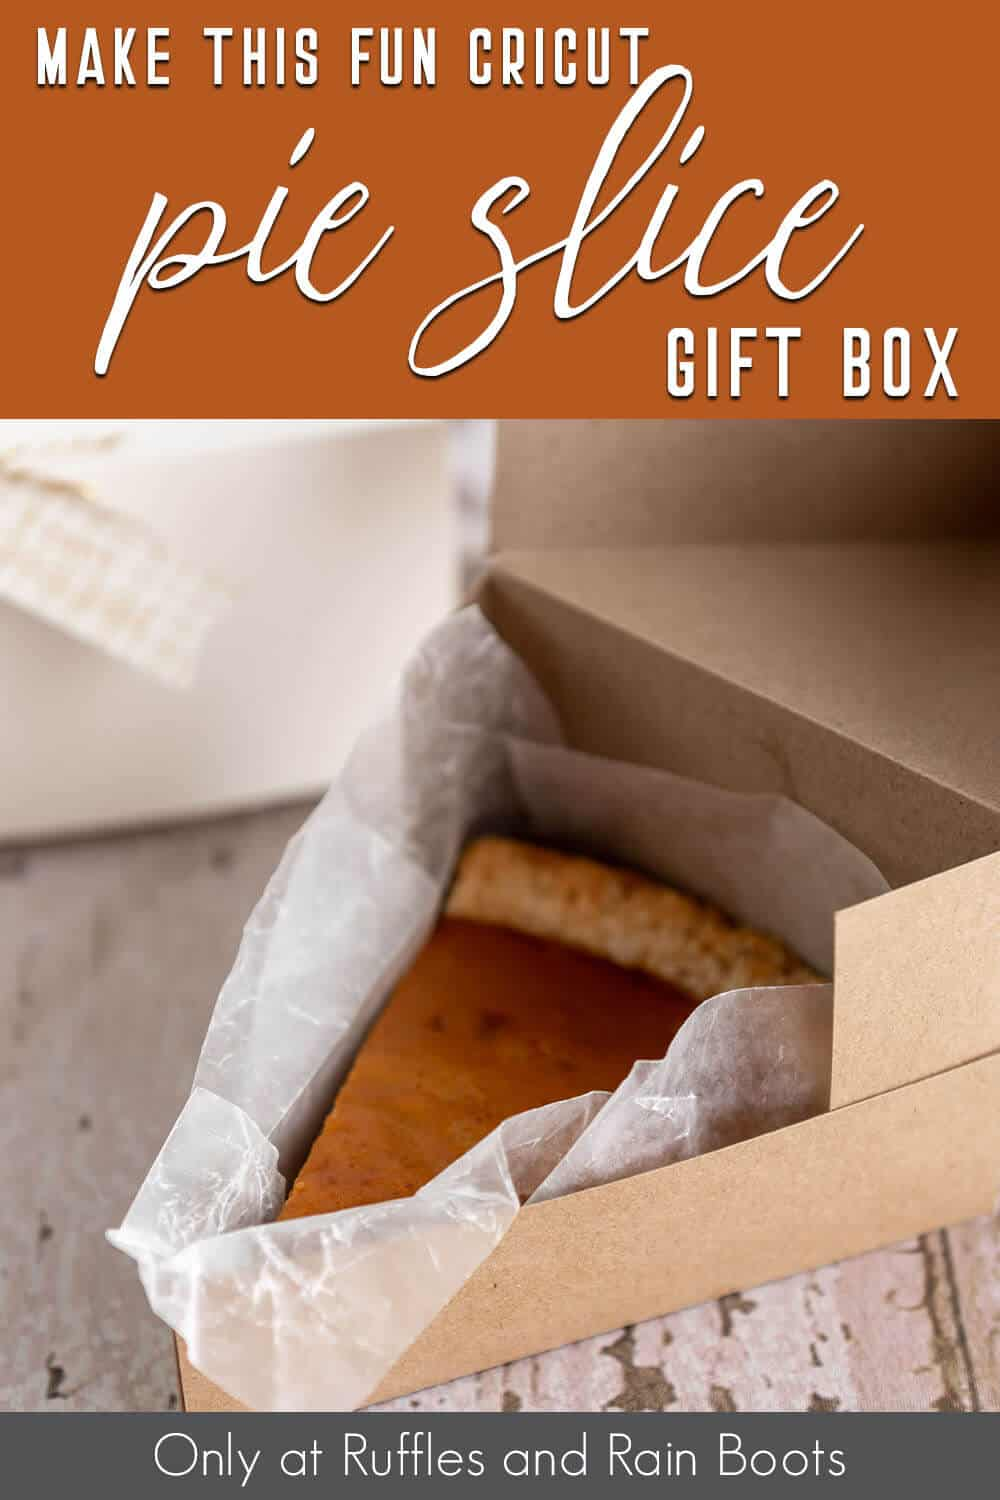 cake slice gift box cricut craft with text which reads make this fun cricut pie slice gift box